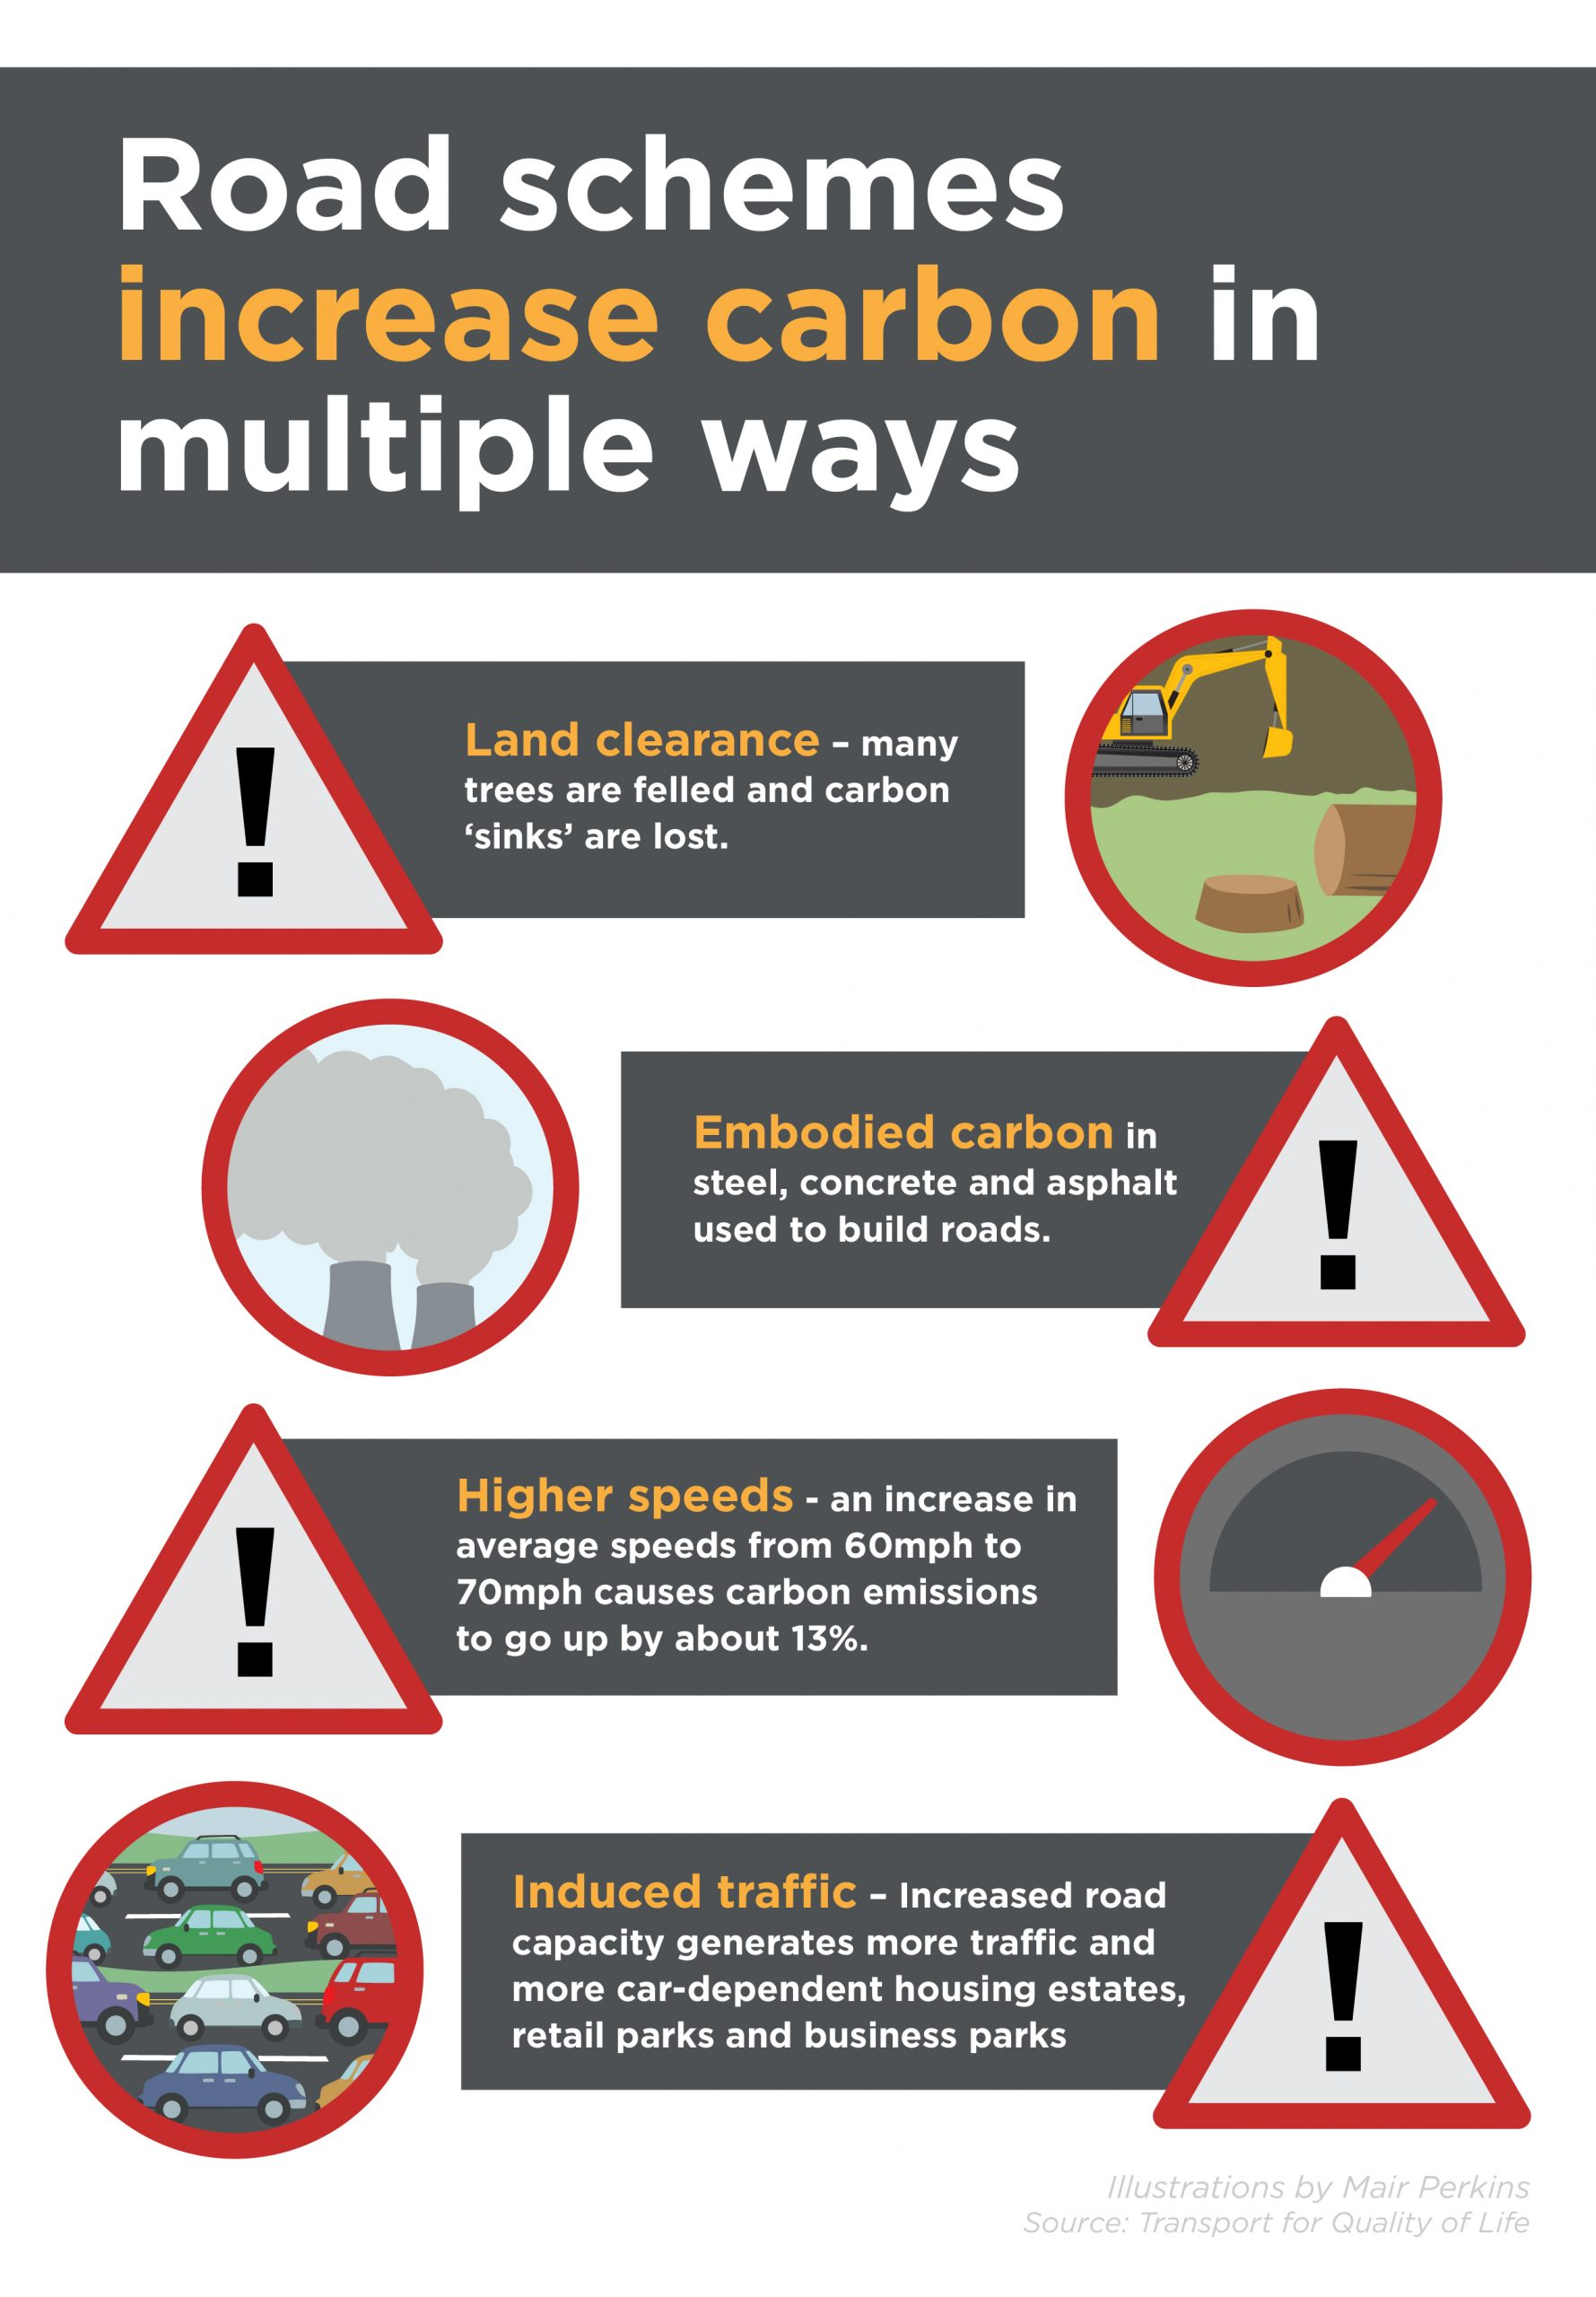 The multiple ways that road schemes increase carbon emmissions.